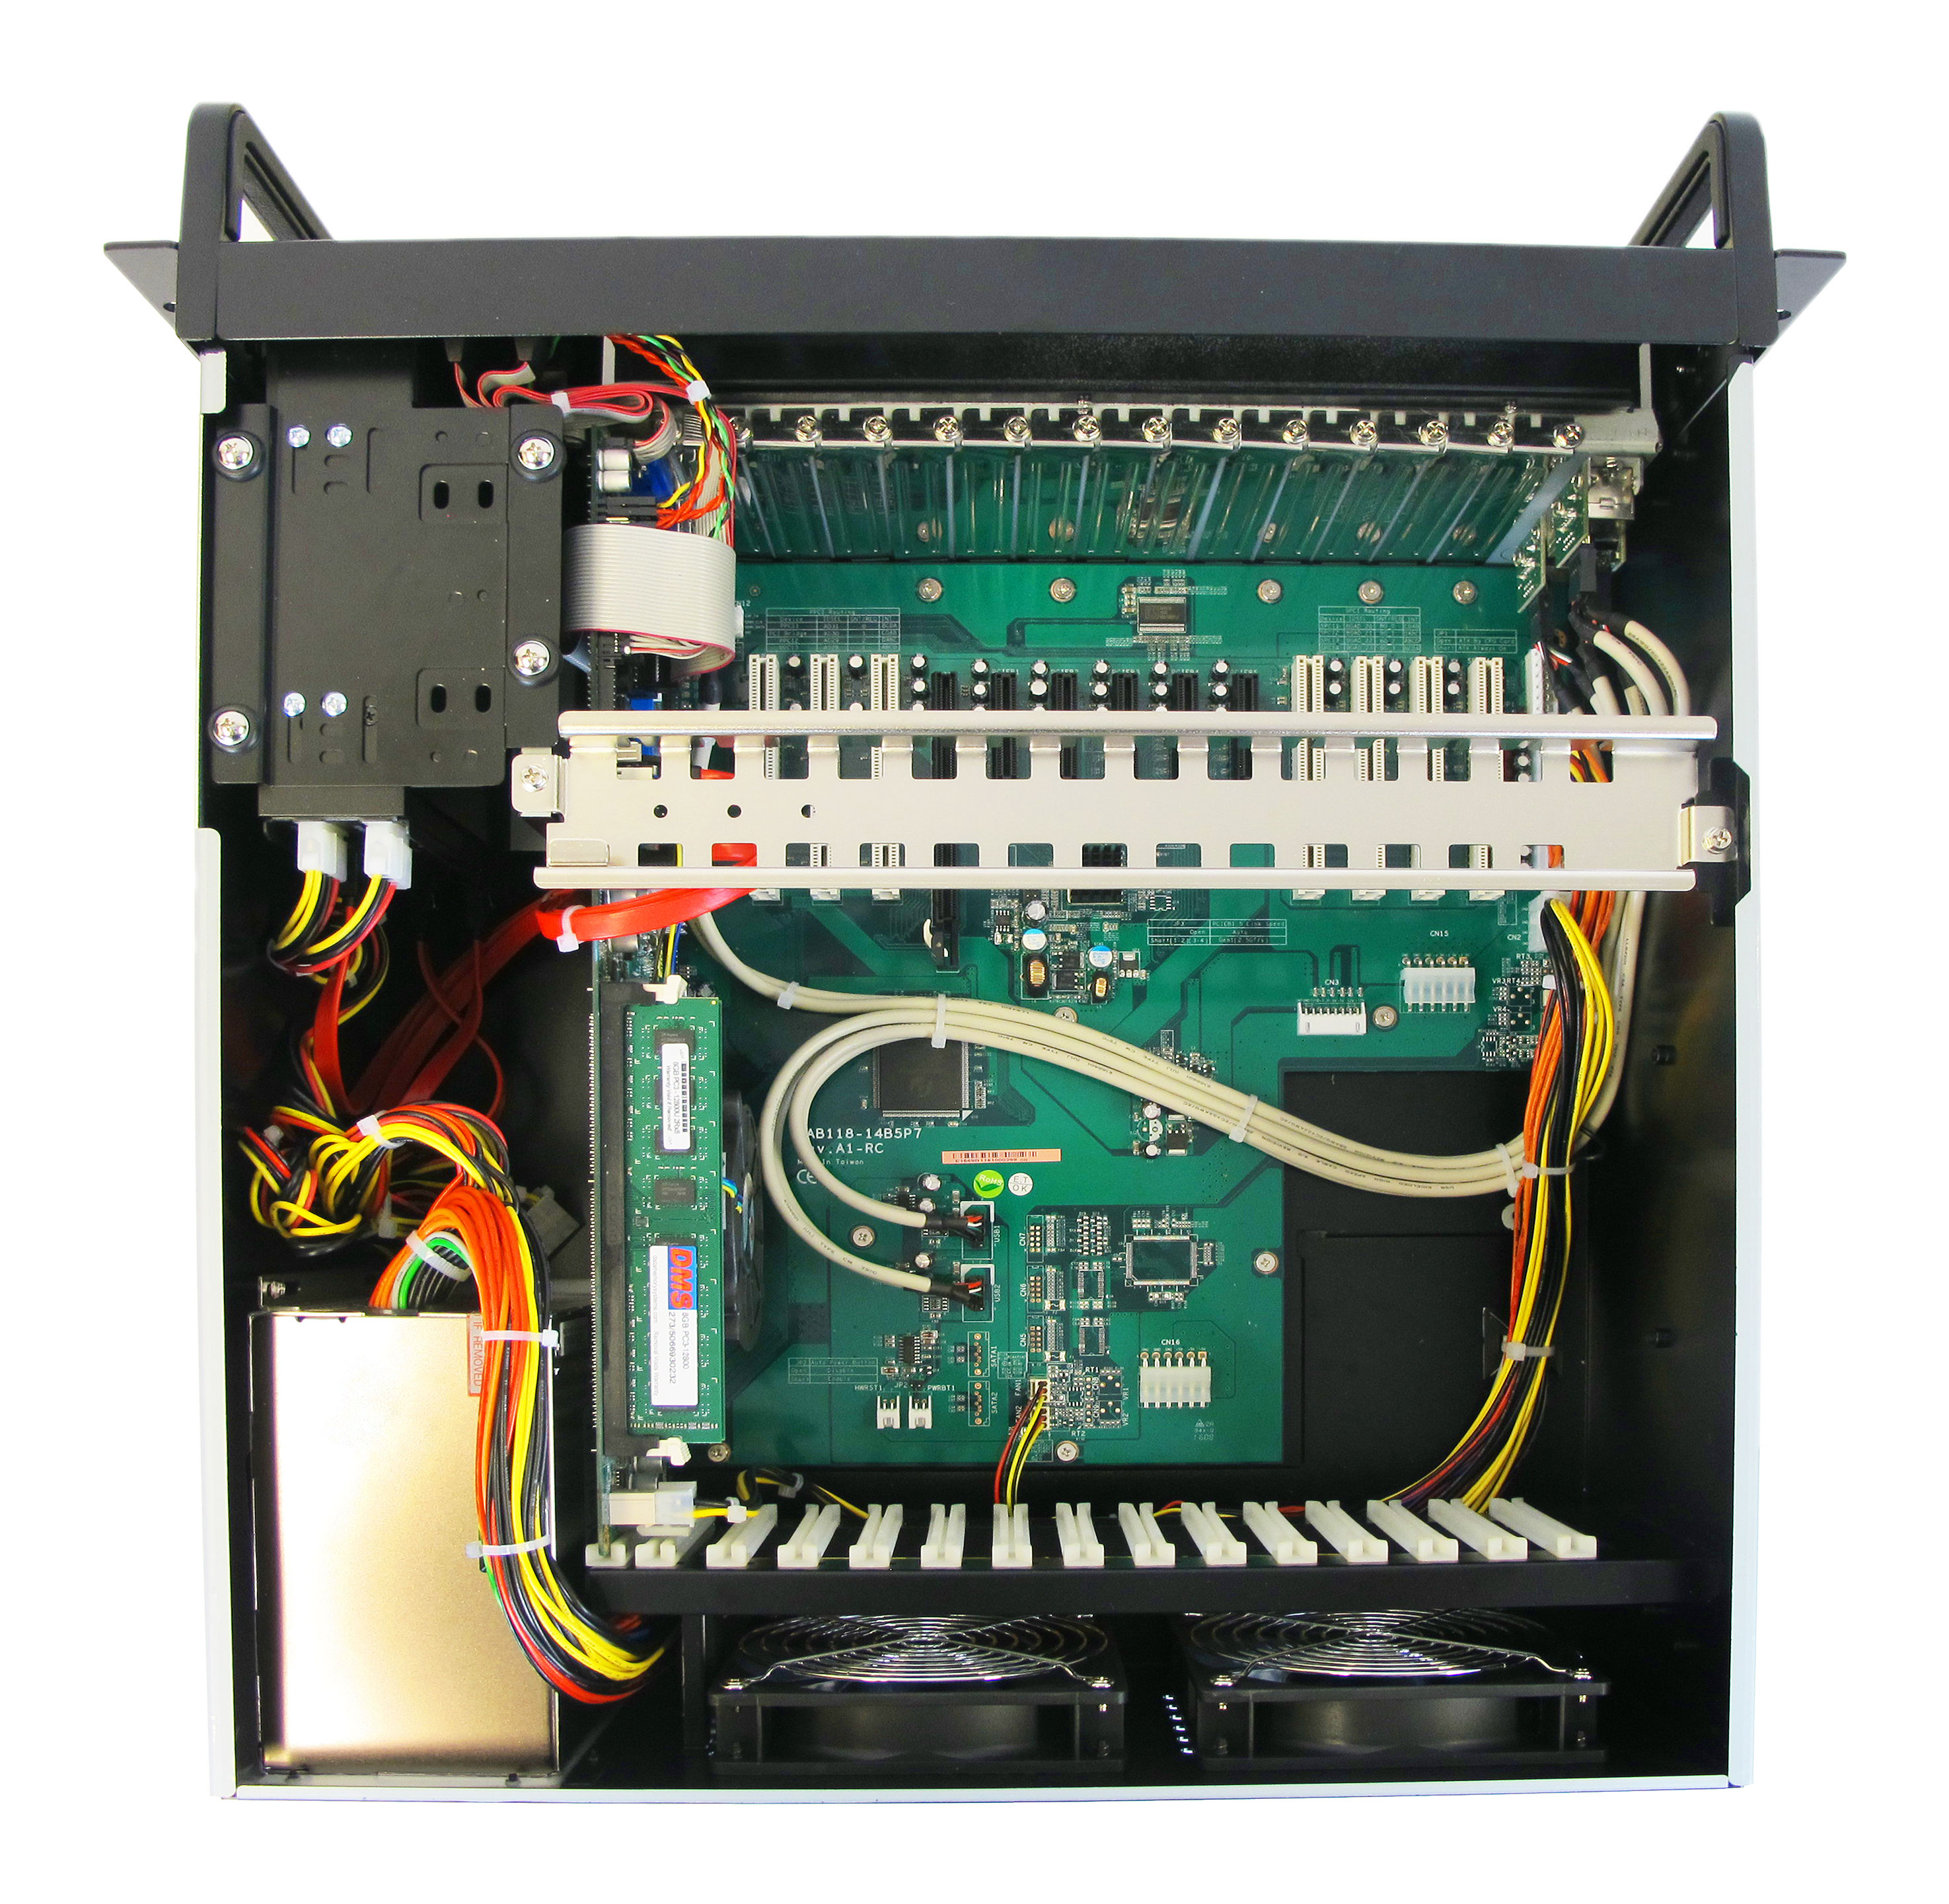 AD-581 1U Industrial Instrumentation Rack Mount Computer Internal